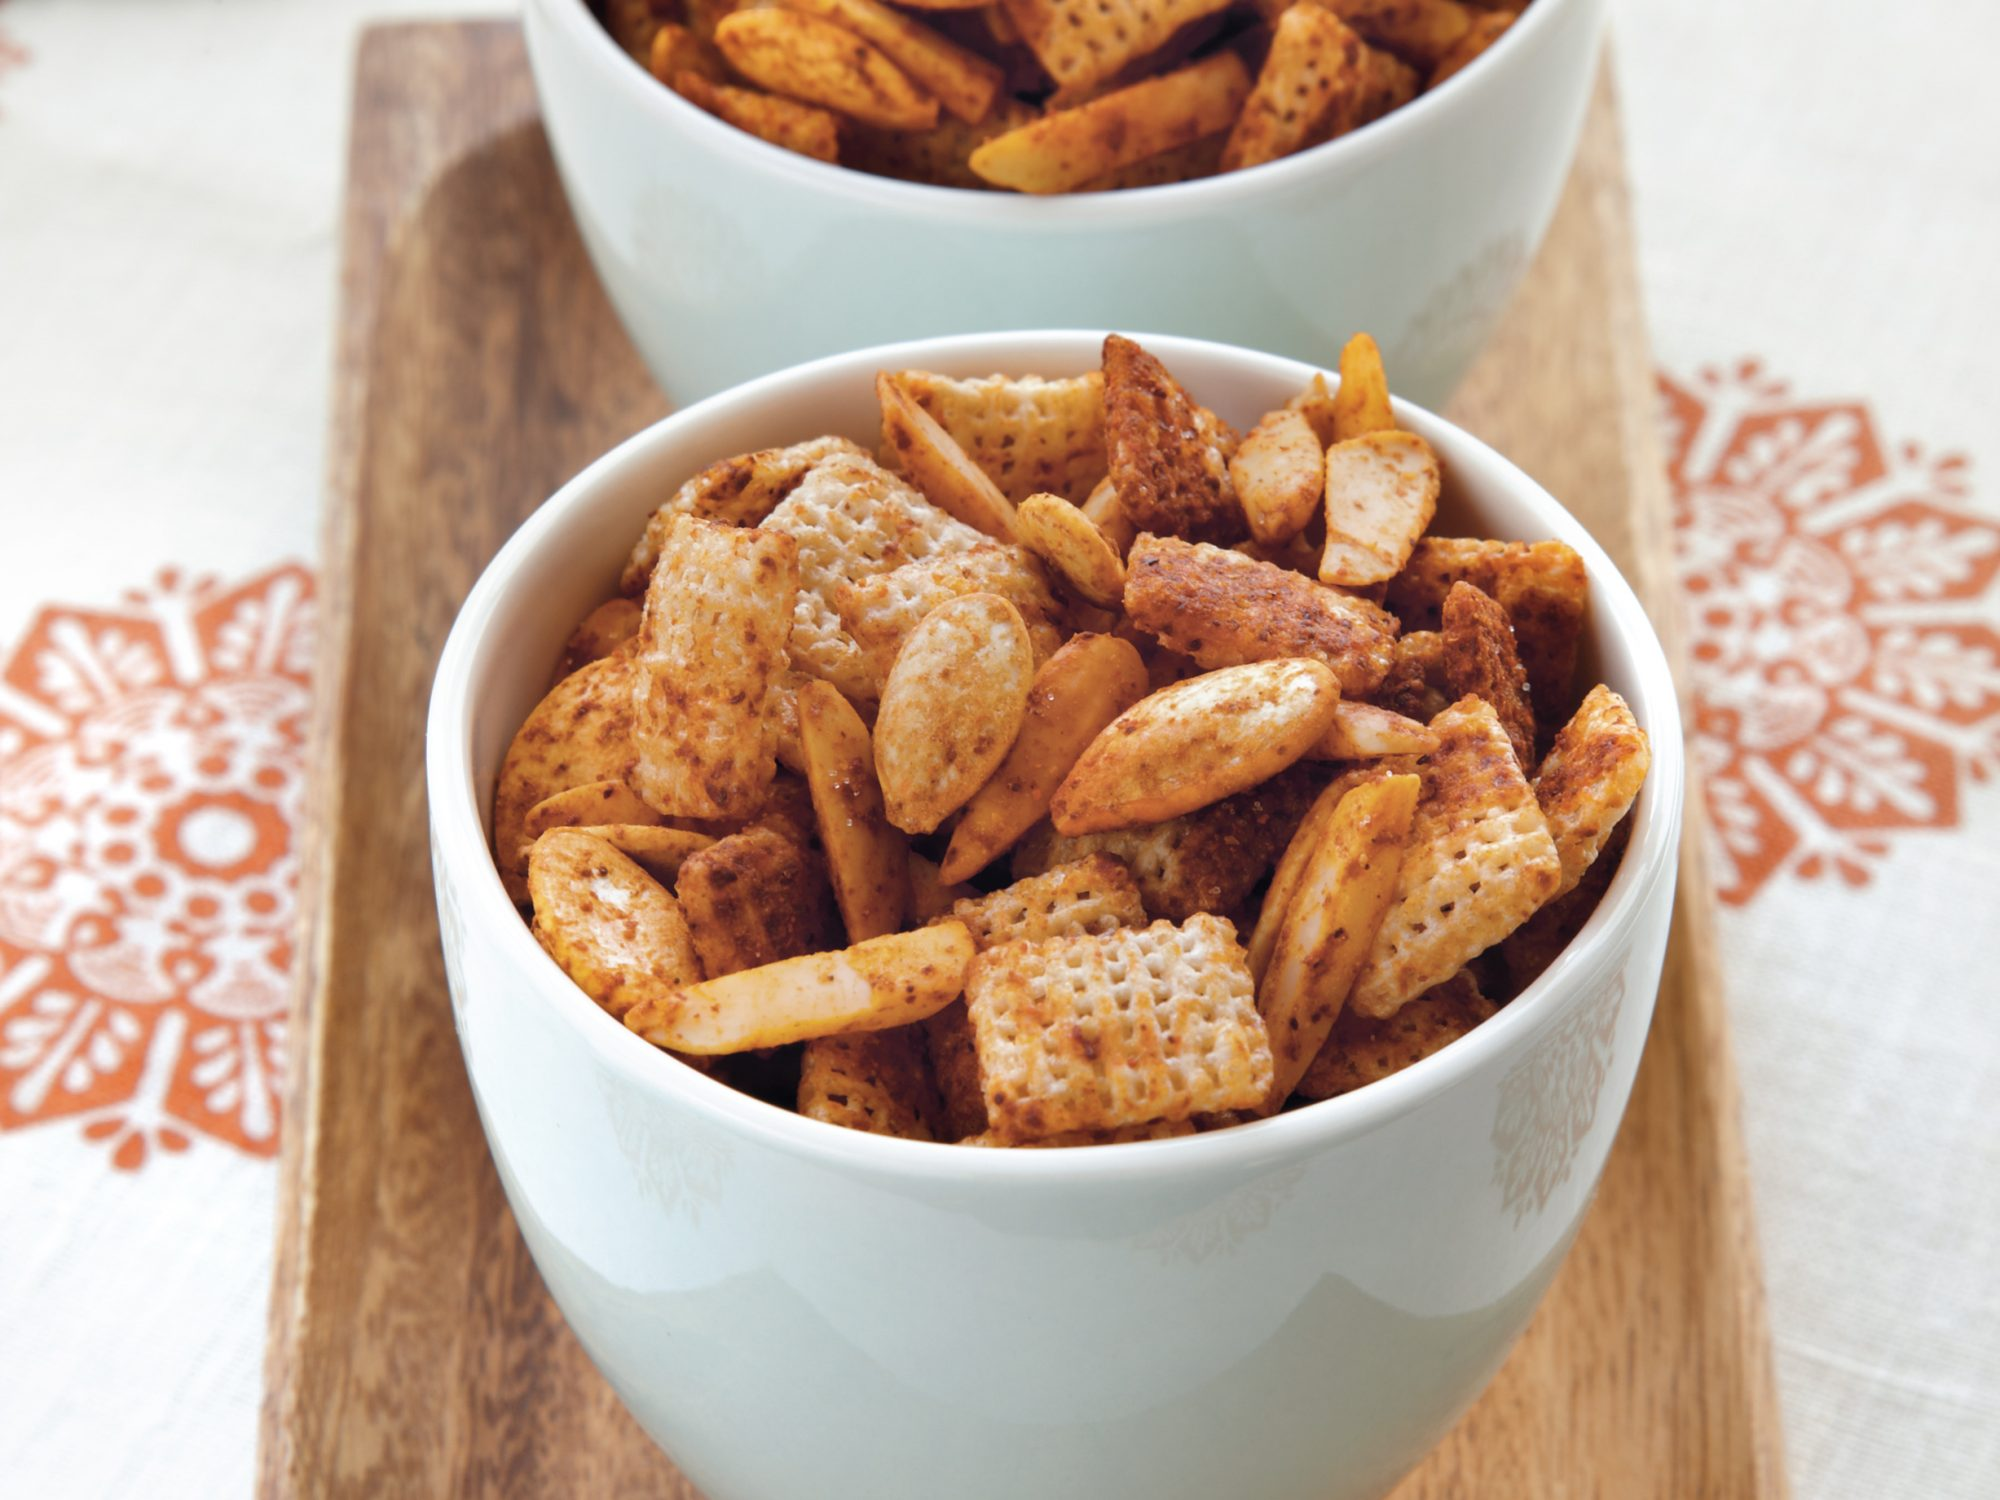 Spicy Almond-Pumpkinseed Snack Mix